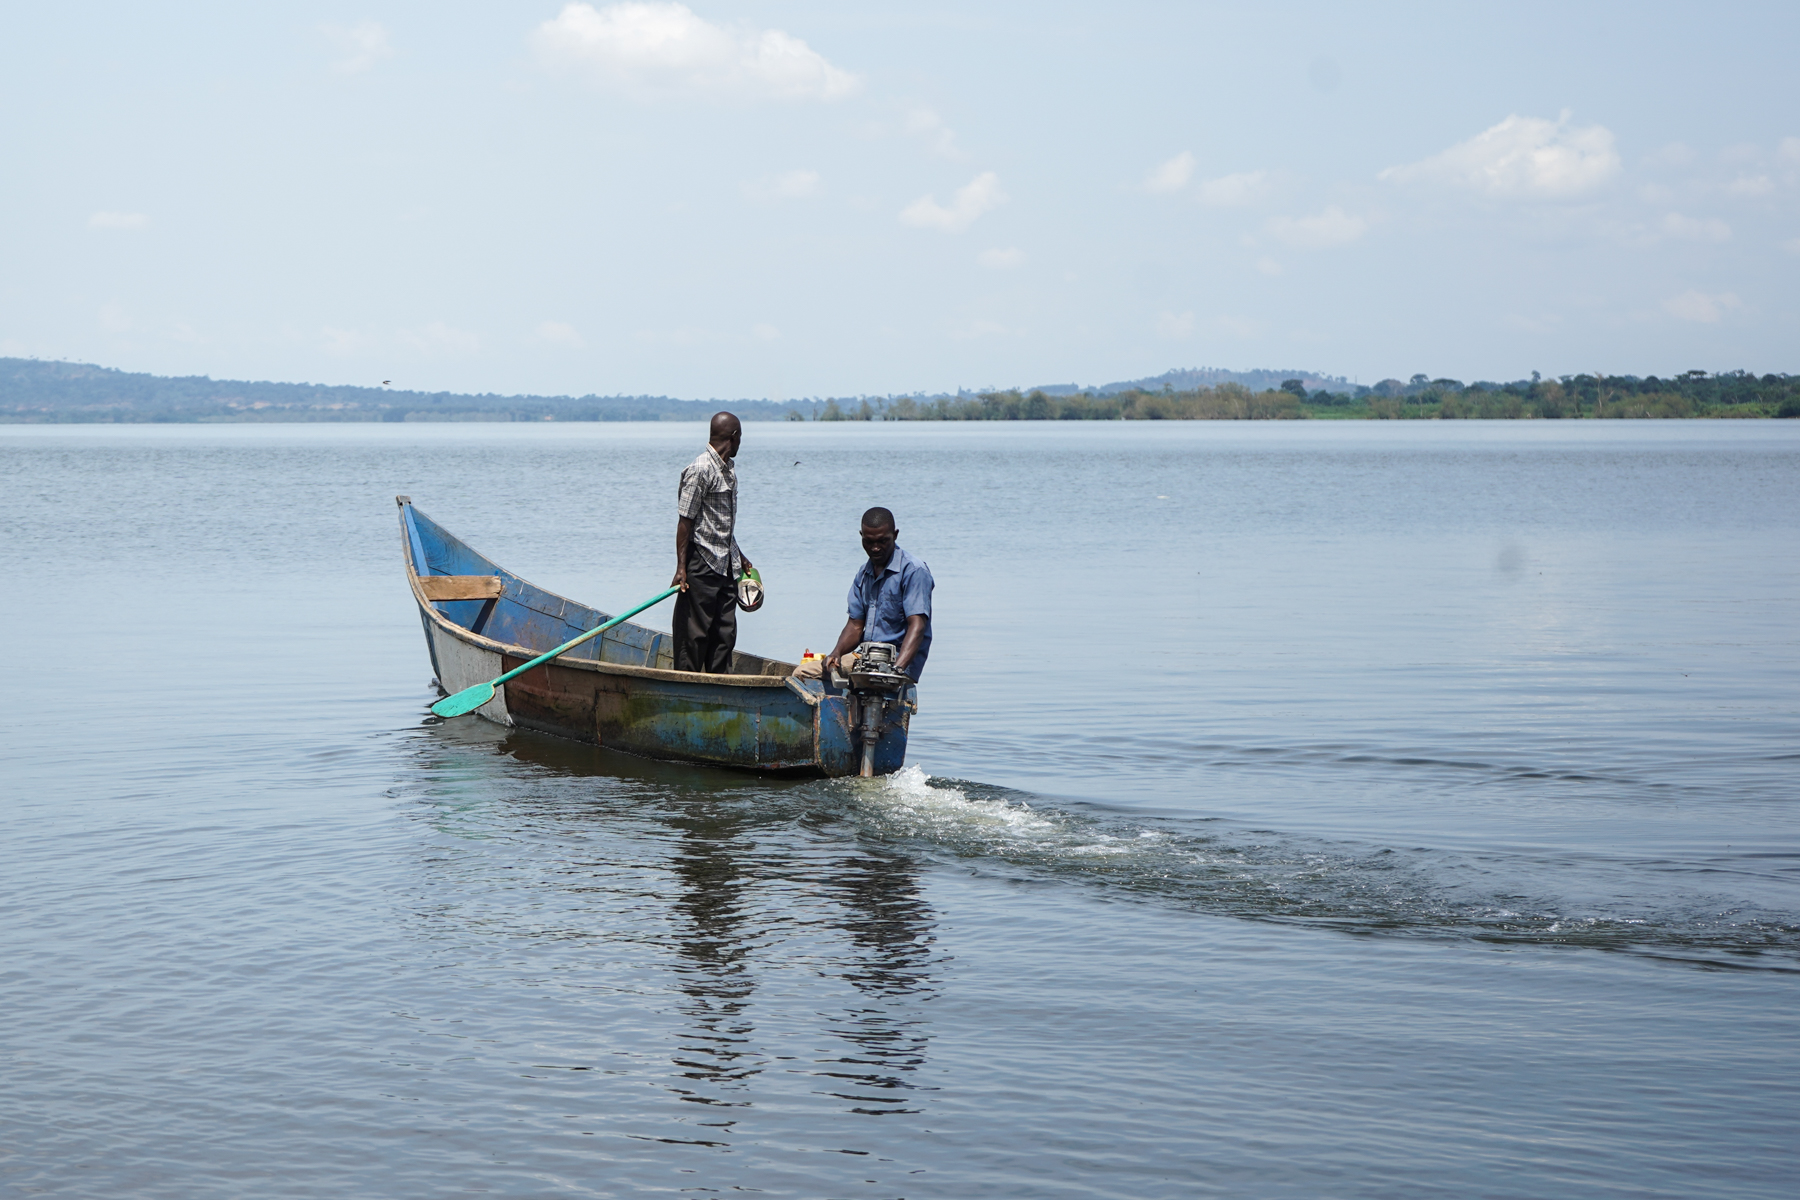 One of the wooden boats typically used on Lake Victoria. This one has a motor — most don't